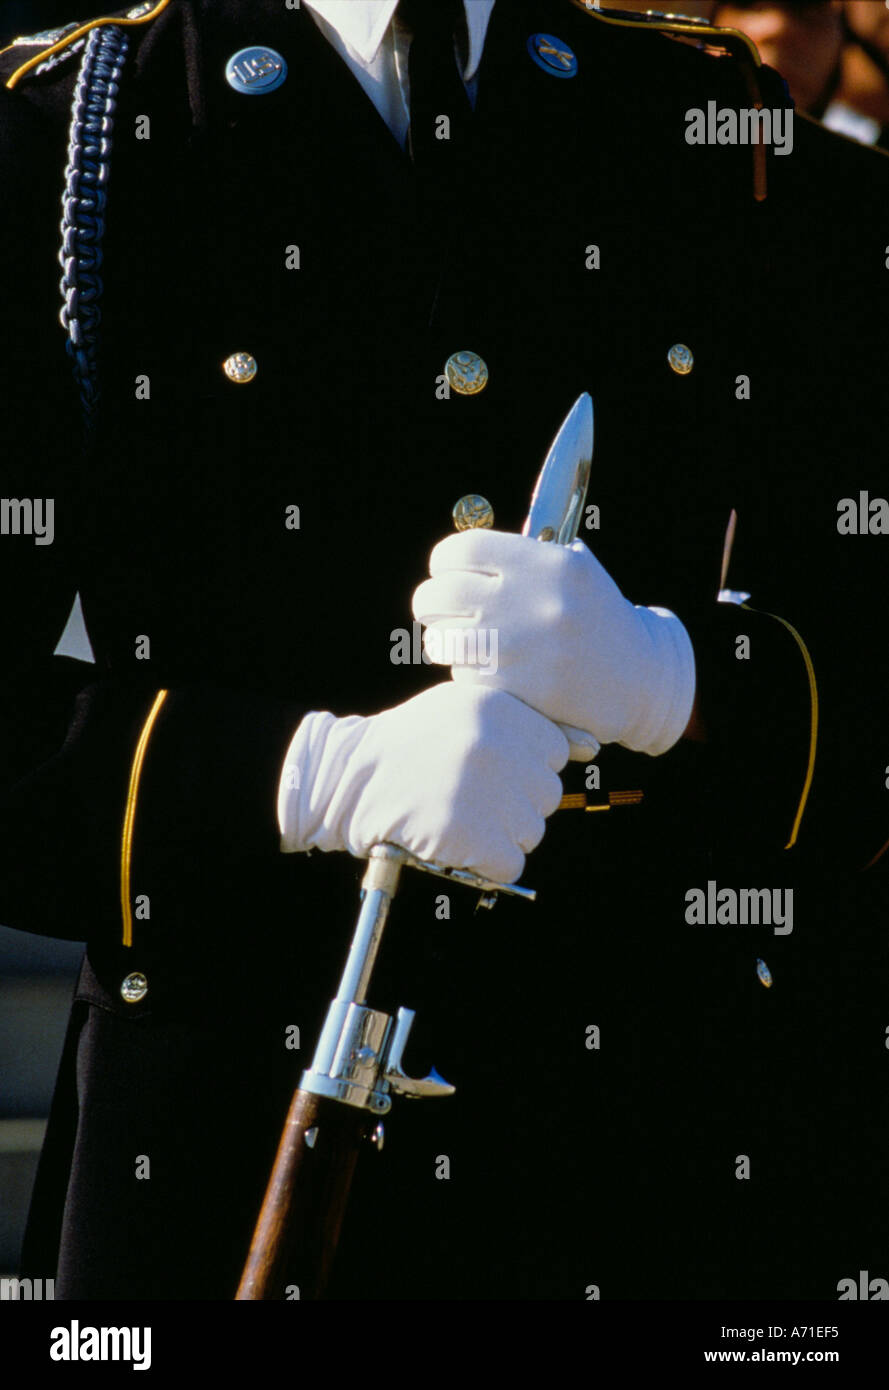 Army dress white gloves